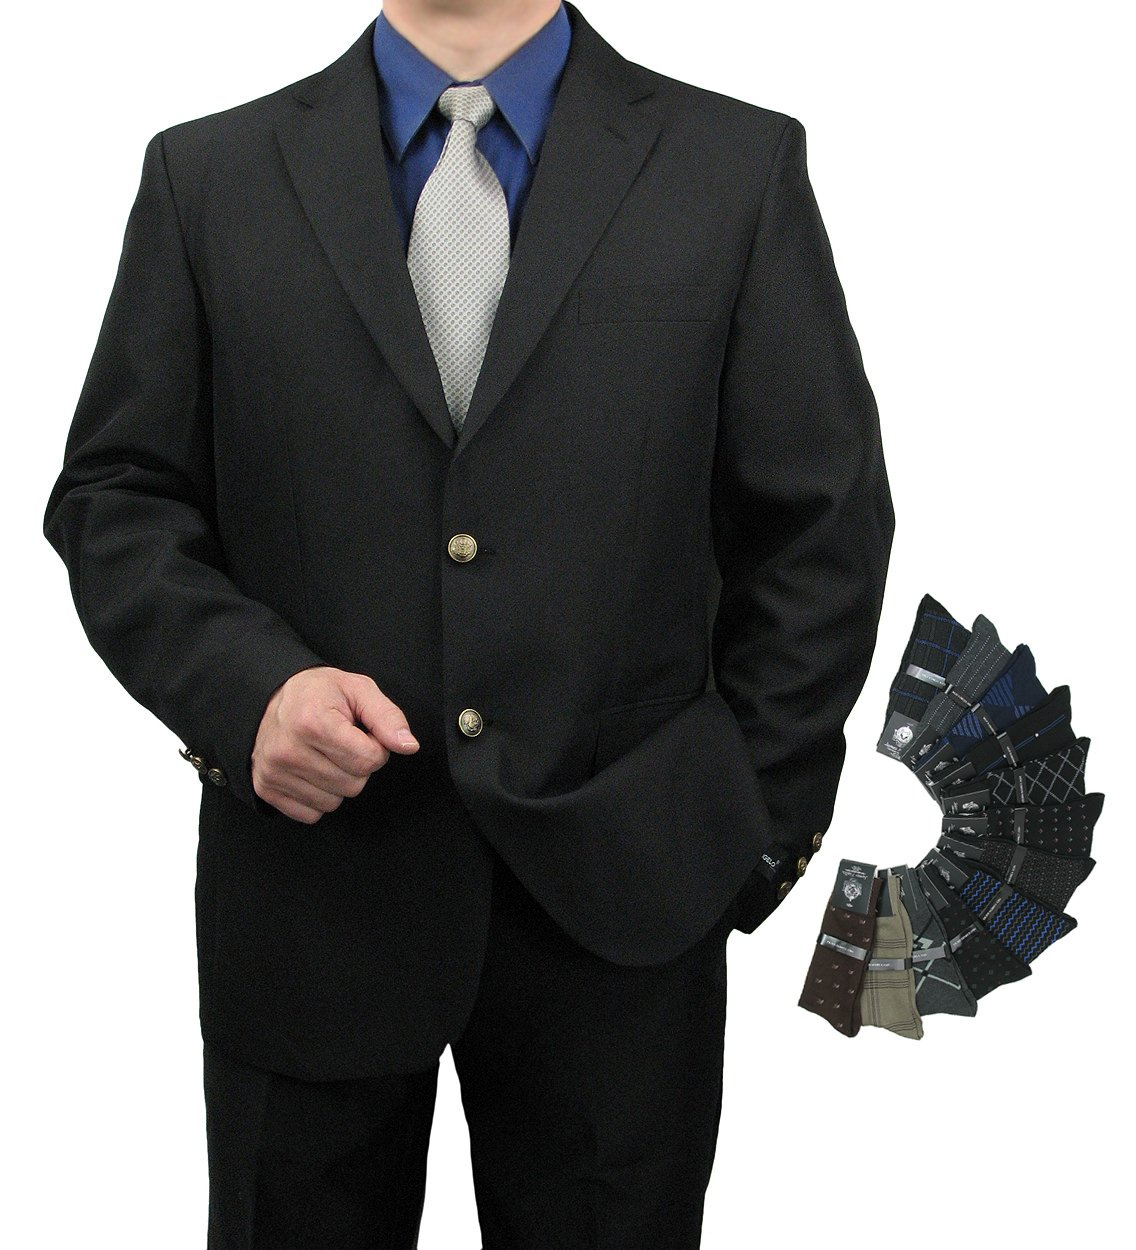 Triple Blessings Men's Classic Fit Single-Breasted 2-Button Blazer Jacket Sports Coat w/One Pair Of Dress Socks (Variety Of Colors) - Black 38R